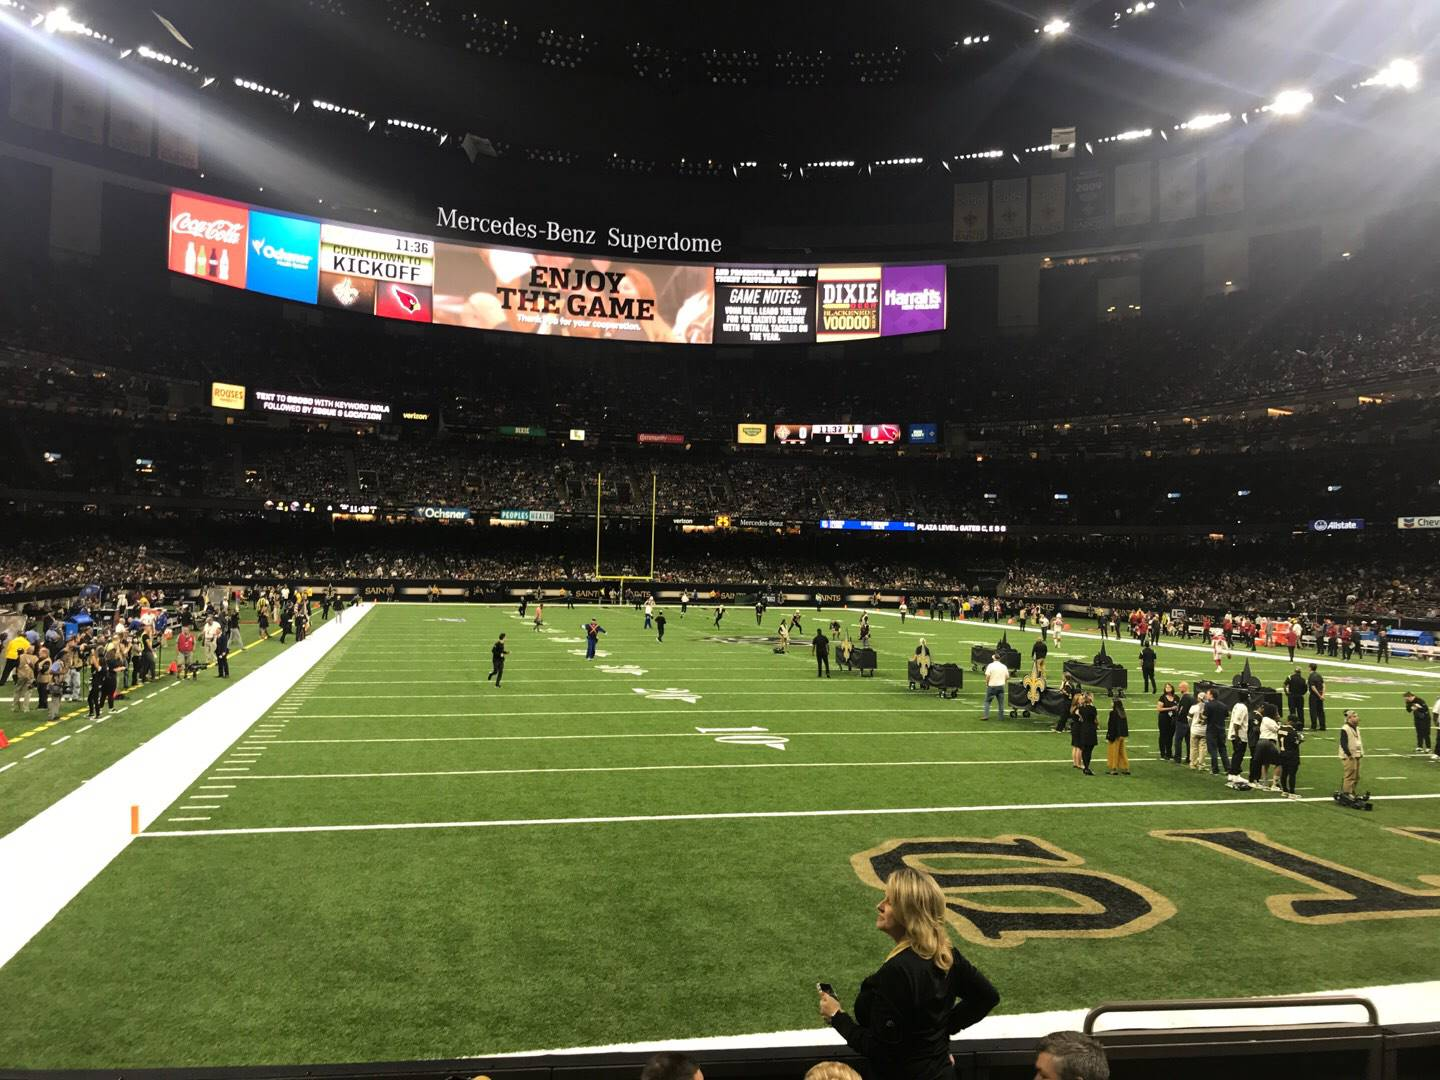 Mercedes-Benz Superdome Section 130 Row 6 Seat 4